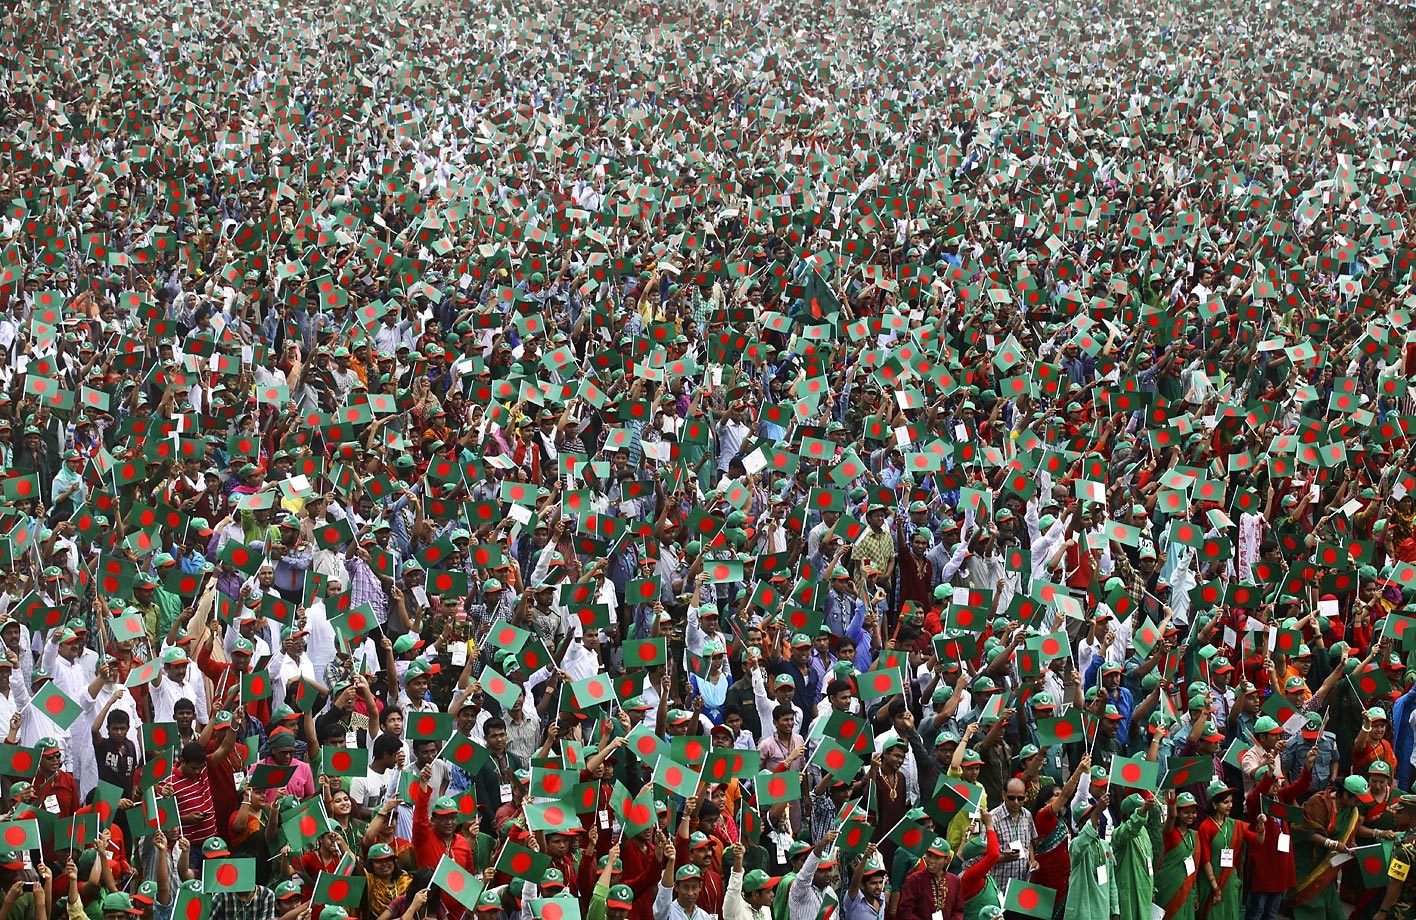 Bangladeshis wave their national flags as they gather at the National Parade Ground to create a Guinness world record of most people singing the national anthem in unison on March 26, 2013.